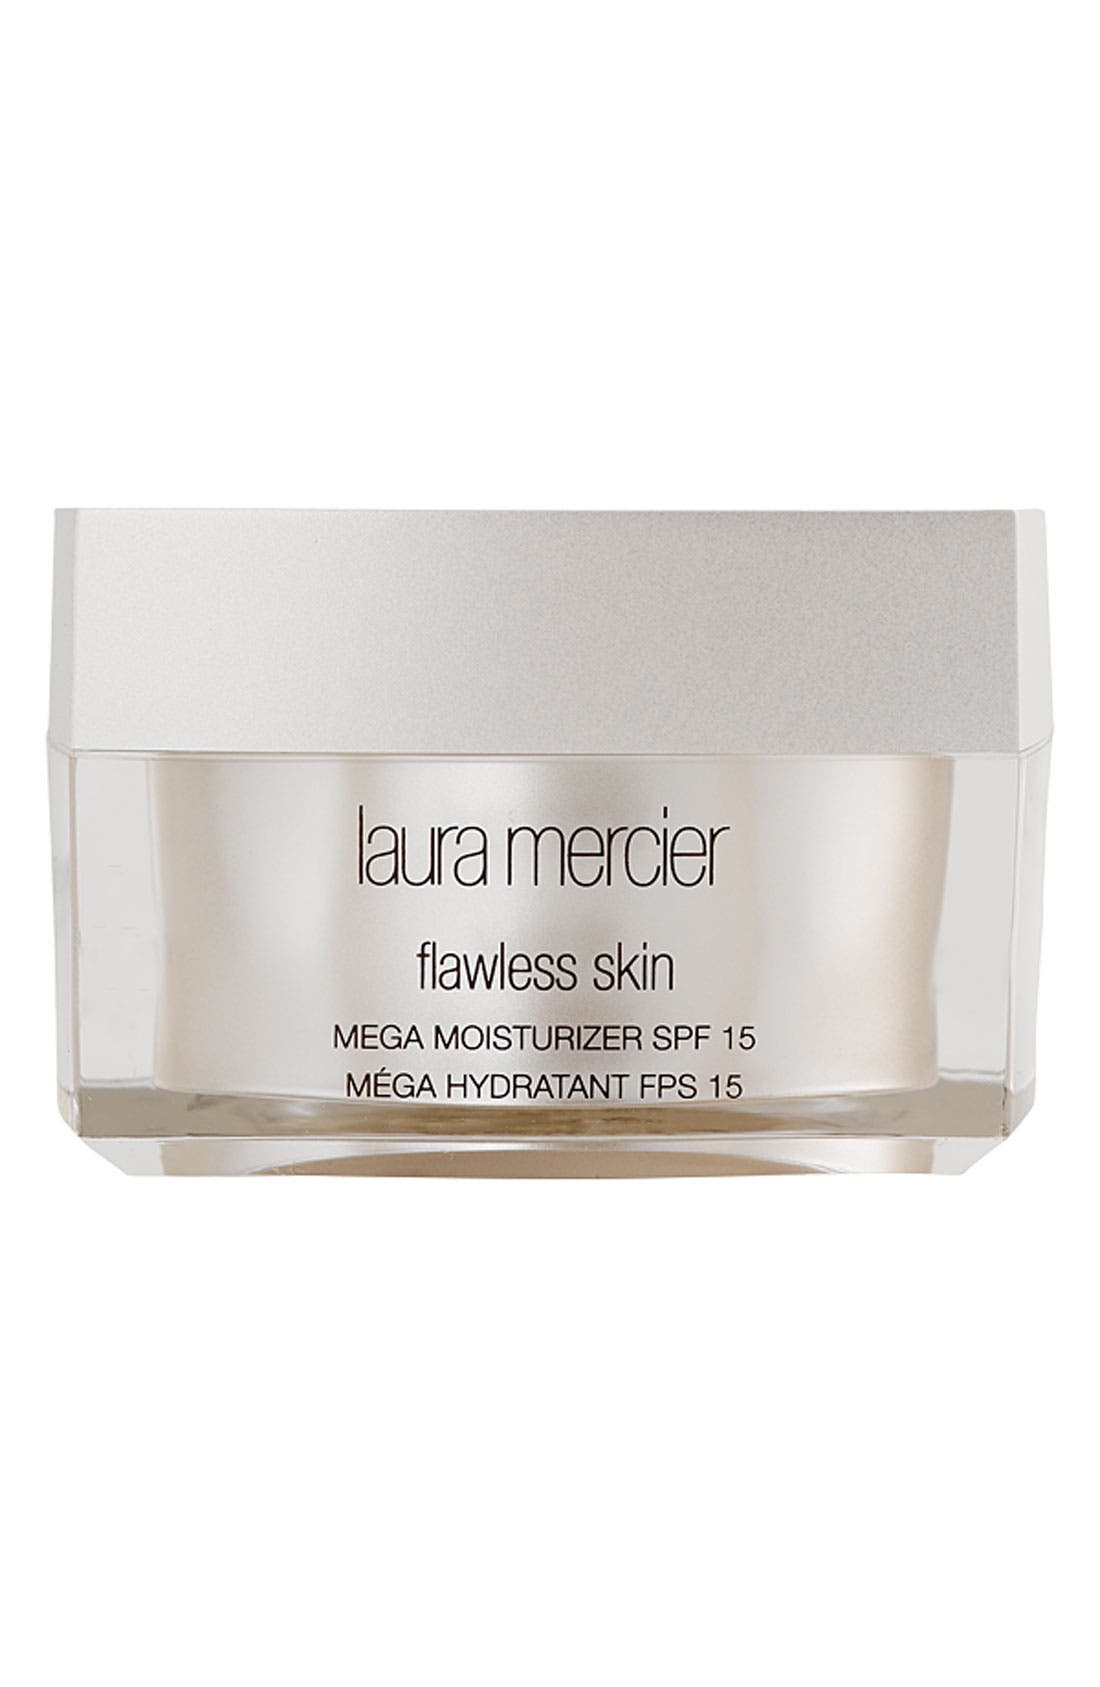 Laura Mercier 'Flawless Skin' Mega Moisturizer SPF 15 for Normal/Dry Skin